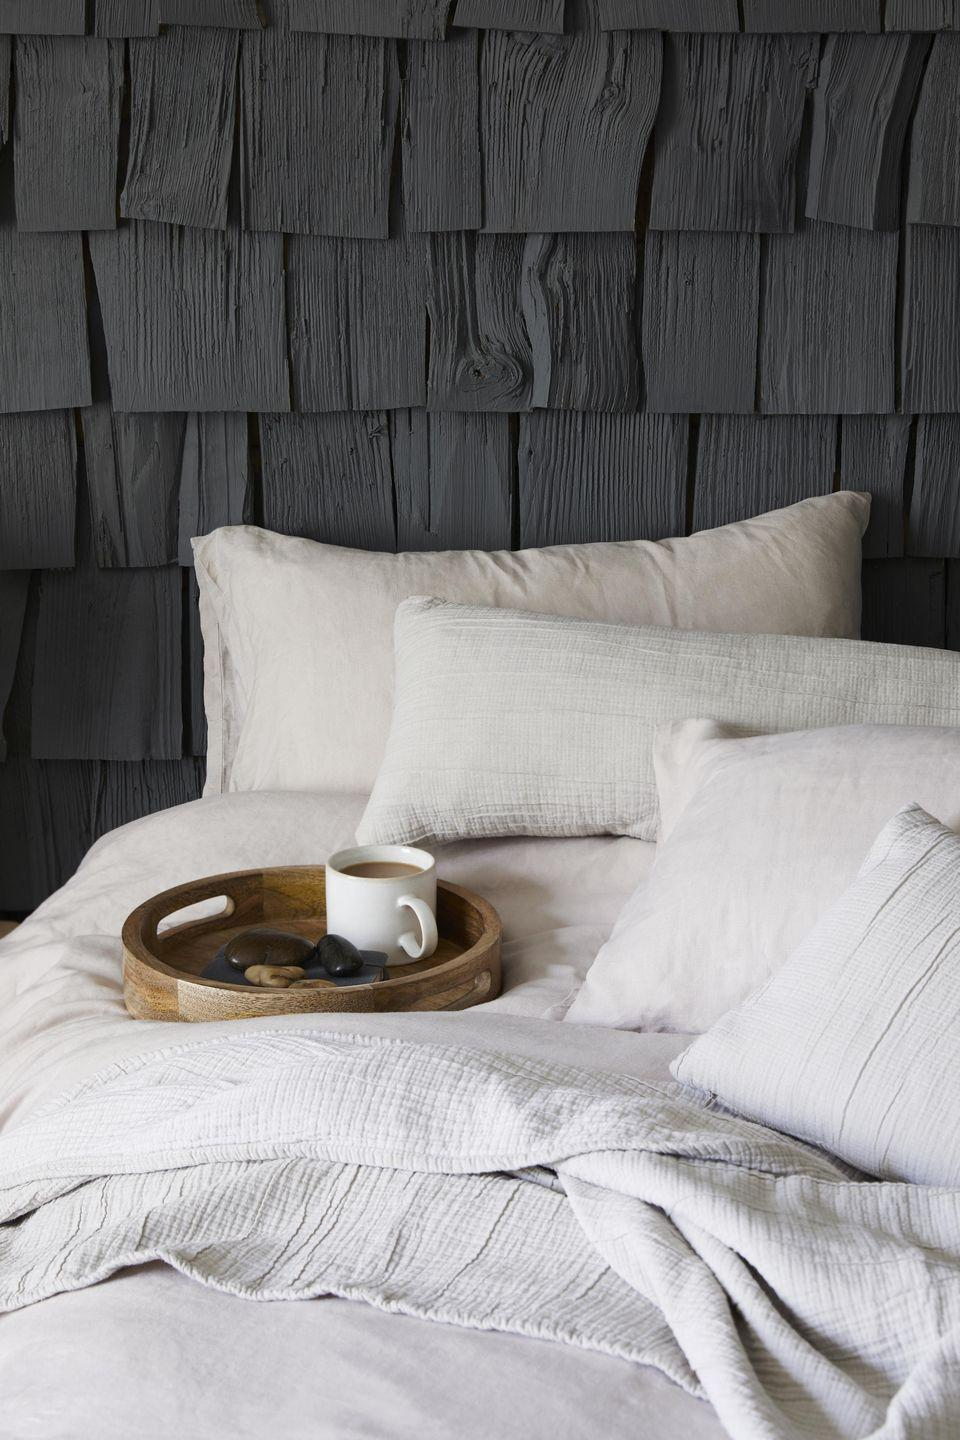 """<p>Now is the perfect time to refresh your <a href=""""https://www.housebeautiful.com/uk/decorate/bedroom/a35201382/bedroom-lighting-ideas/"""" rel=""""nofollow noopener"""" target=""""_blank"""" data-ylk=""""slk:bedroom"""" class=""""link rapid-noclick-resp"""">bedroom</a> with luxurious bedlinen, cosy cushions and versatile colour palettes. As part of Dunelm's 'The Edited Life' collection, you'll find all you need to upgrade your home. </p>"""